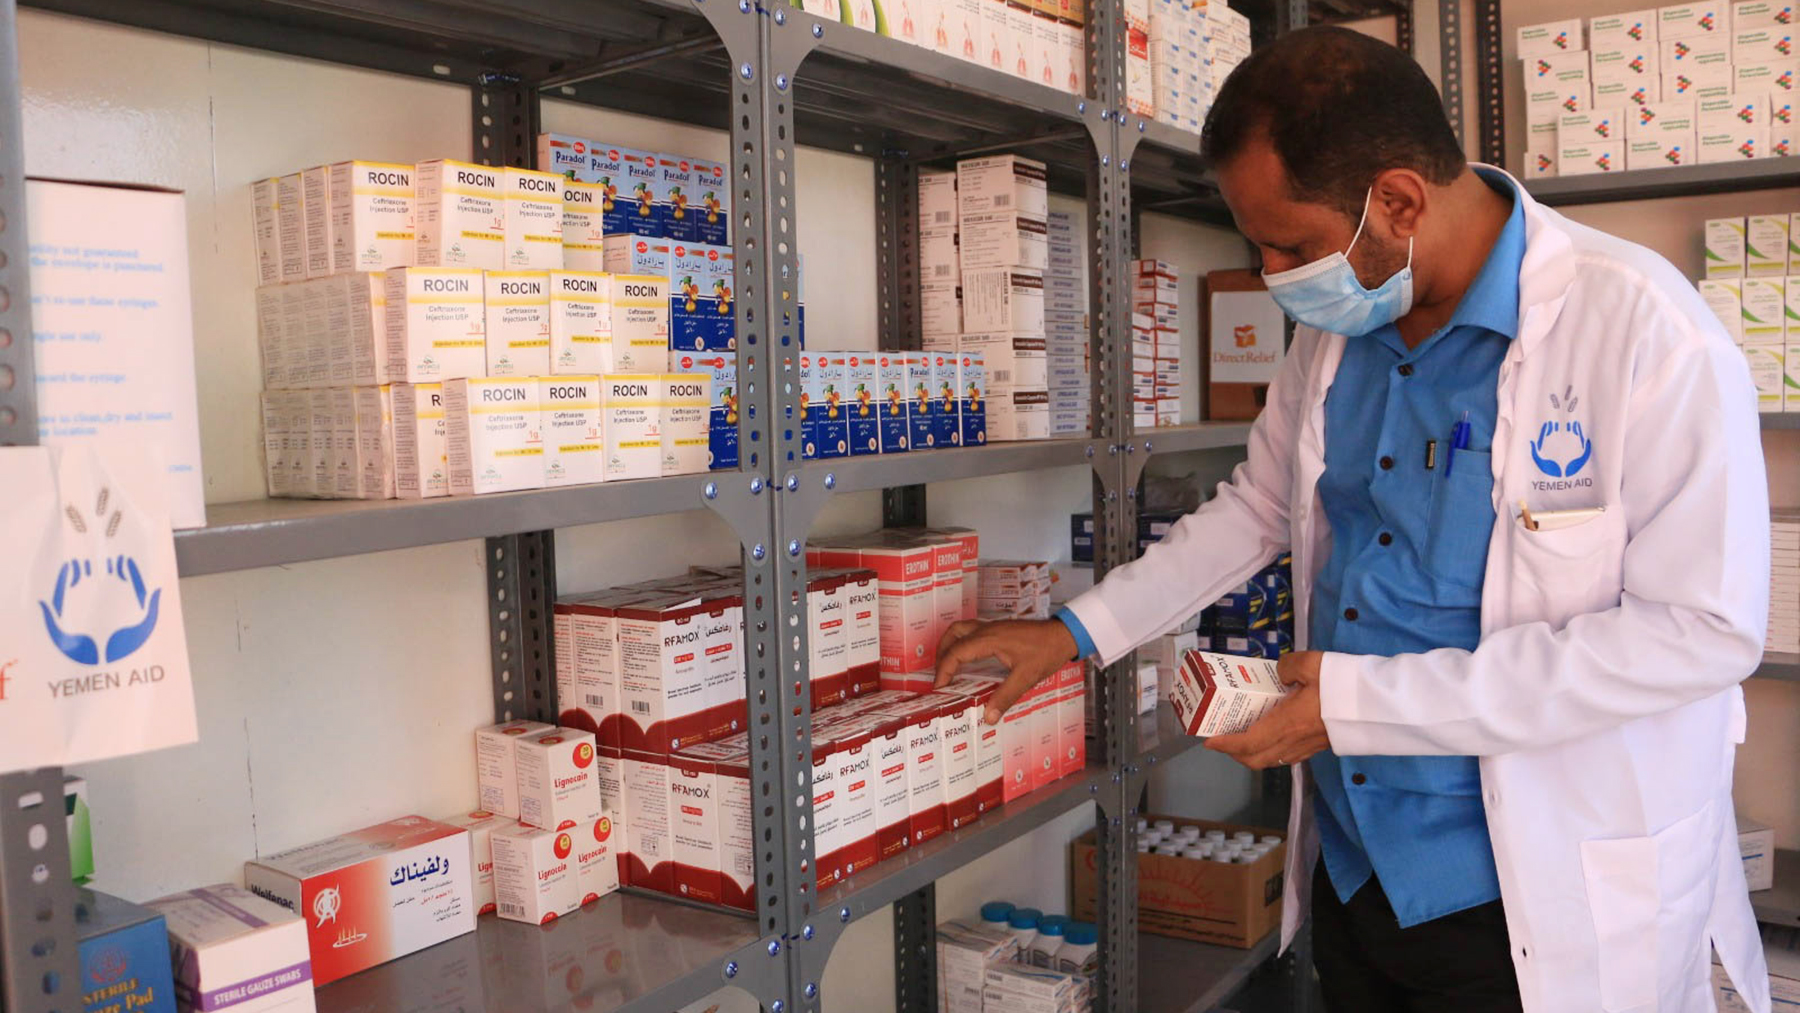 The Direct Relief-funded Al Dobba Health Center in Yemen is open and seeing patients. A Direct Relief's grant to Yemen Aid supported renovations, equipment, and staffing for the health center. The Al Dobba Health Center is one of the few places in Lahij providing Covid-19 testing and is now equipped with solar power and vaccine refrigeration. Yemen Aid is one of hundreds of organizations to receive grant funding, in addition to medical aid, for Covid-19 response. (Courtesy photo)